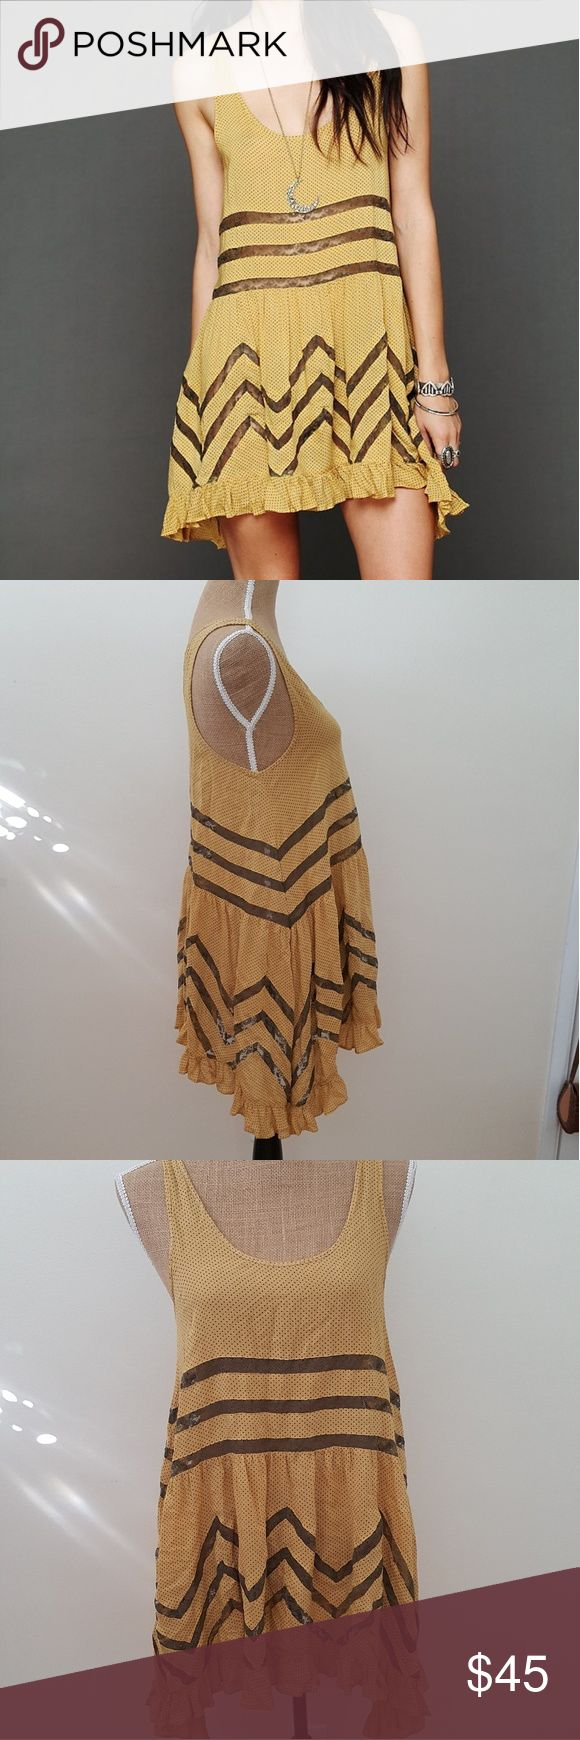 Free People Yellow Voile and Lace Trapeze Dress Lovely mustard yellow and charcoal grey trapeze lace dress by intimately Free People. Dot pattern with lace inset. Excellent condition. Ruffled hem. Size small.   1120215 Free People Dresses